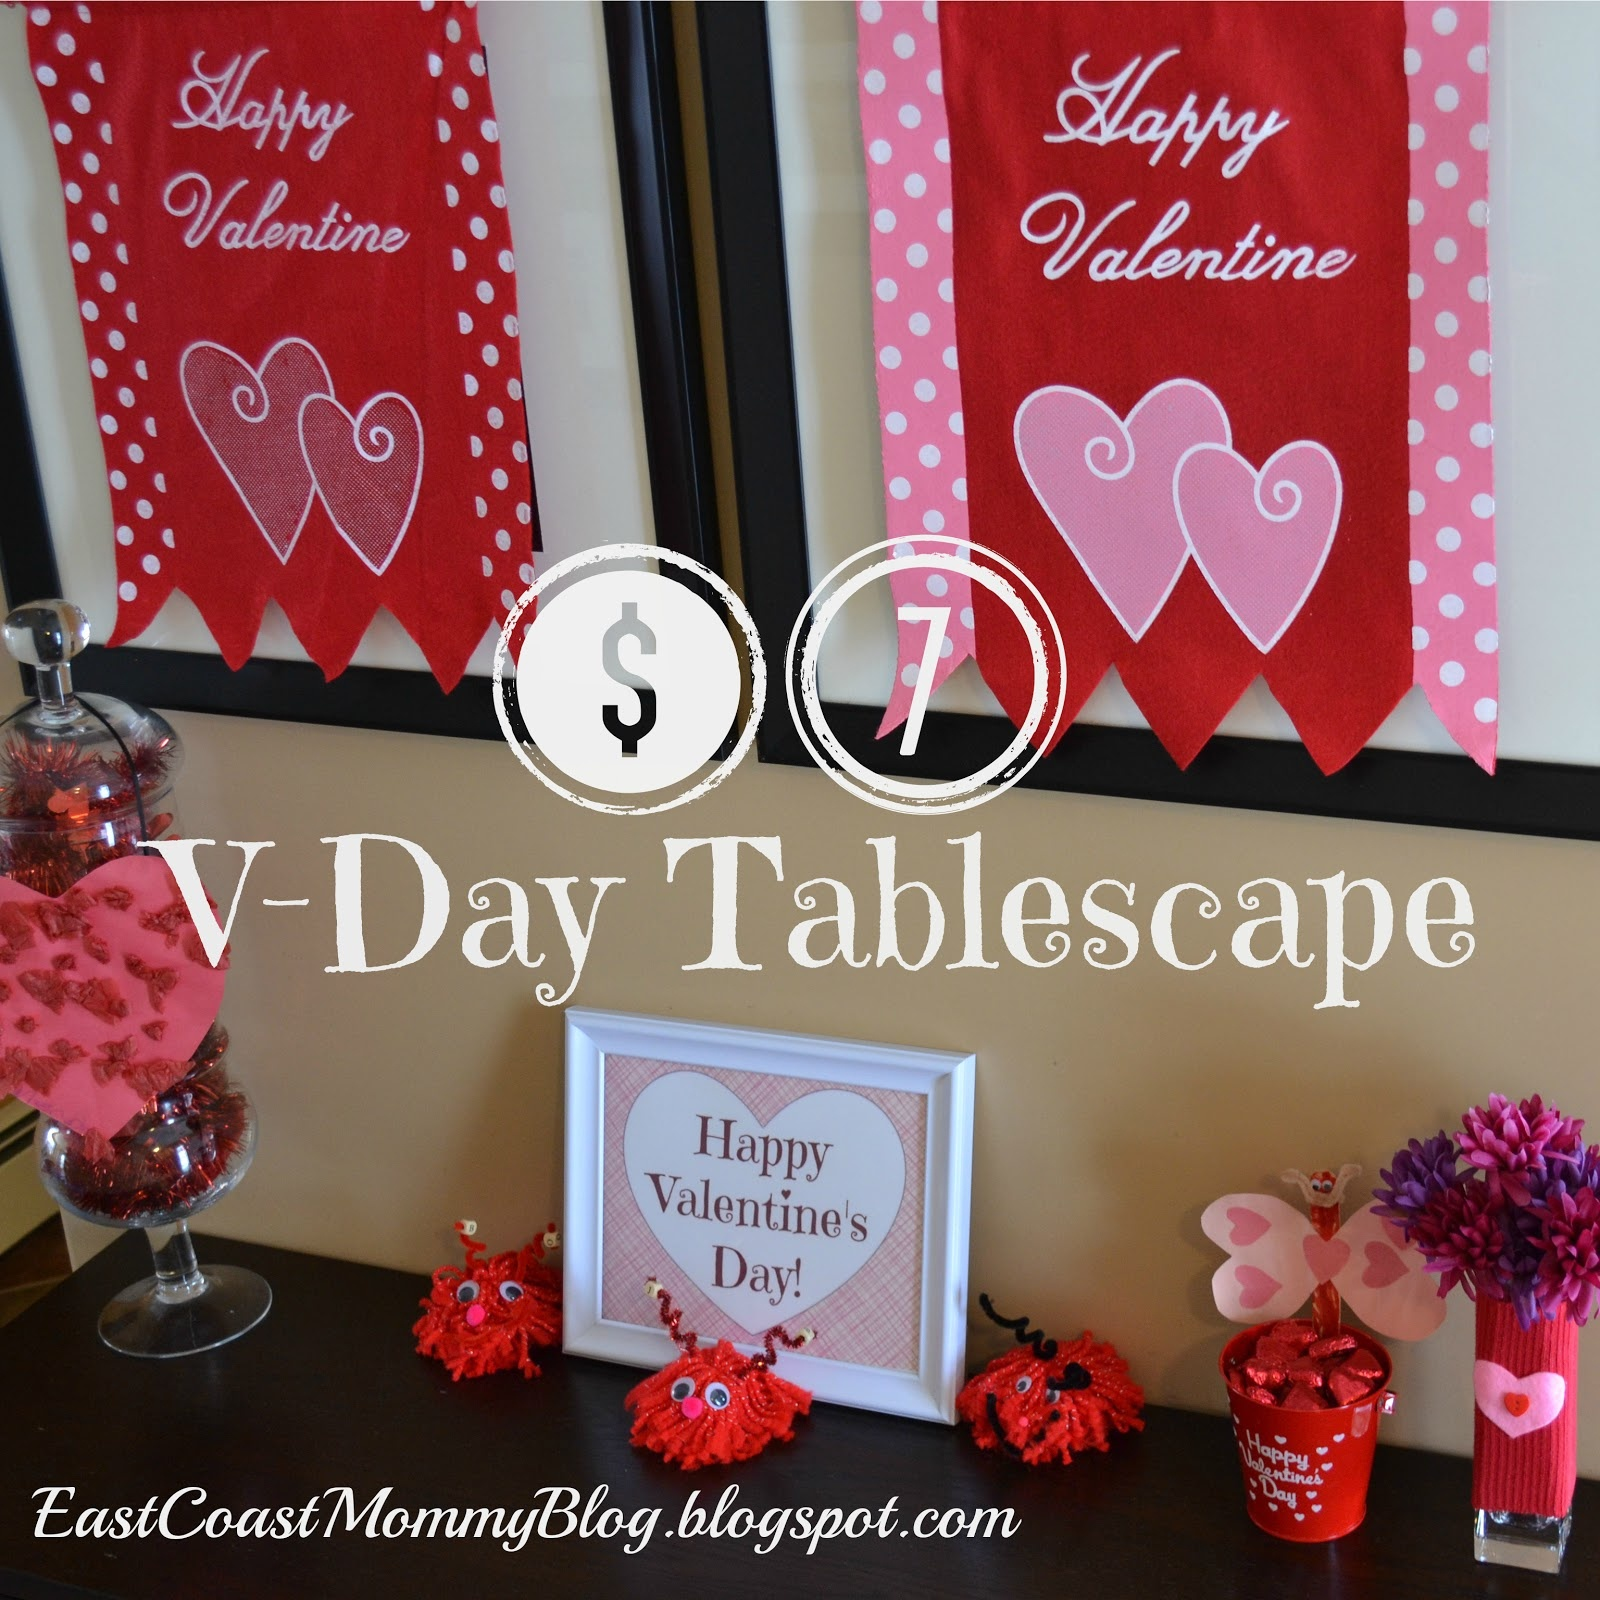 East Coast Mommy: Diy Valentine's Day Decor {With Free Printable} - Free Printable Valentine's Day Decorations